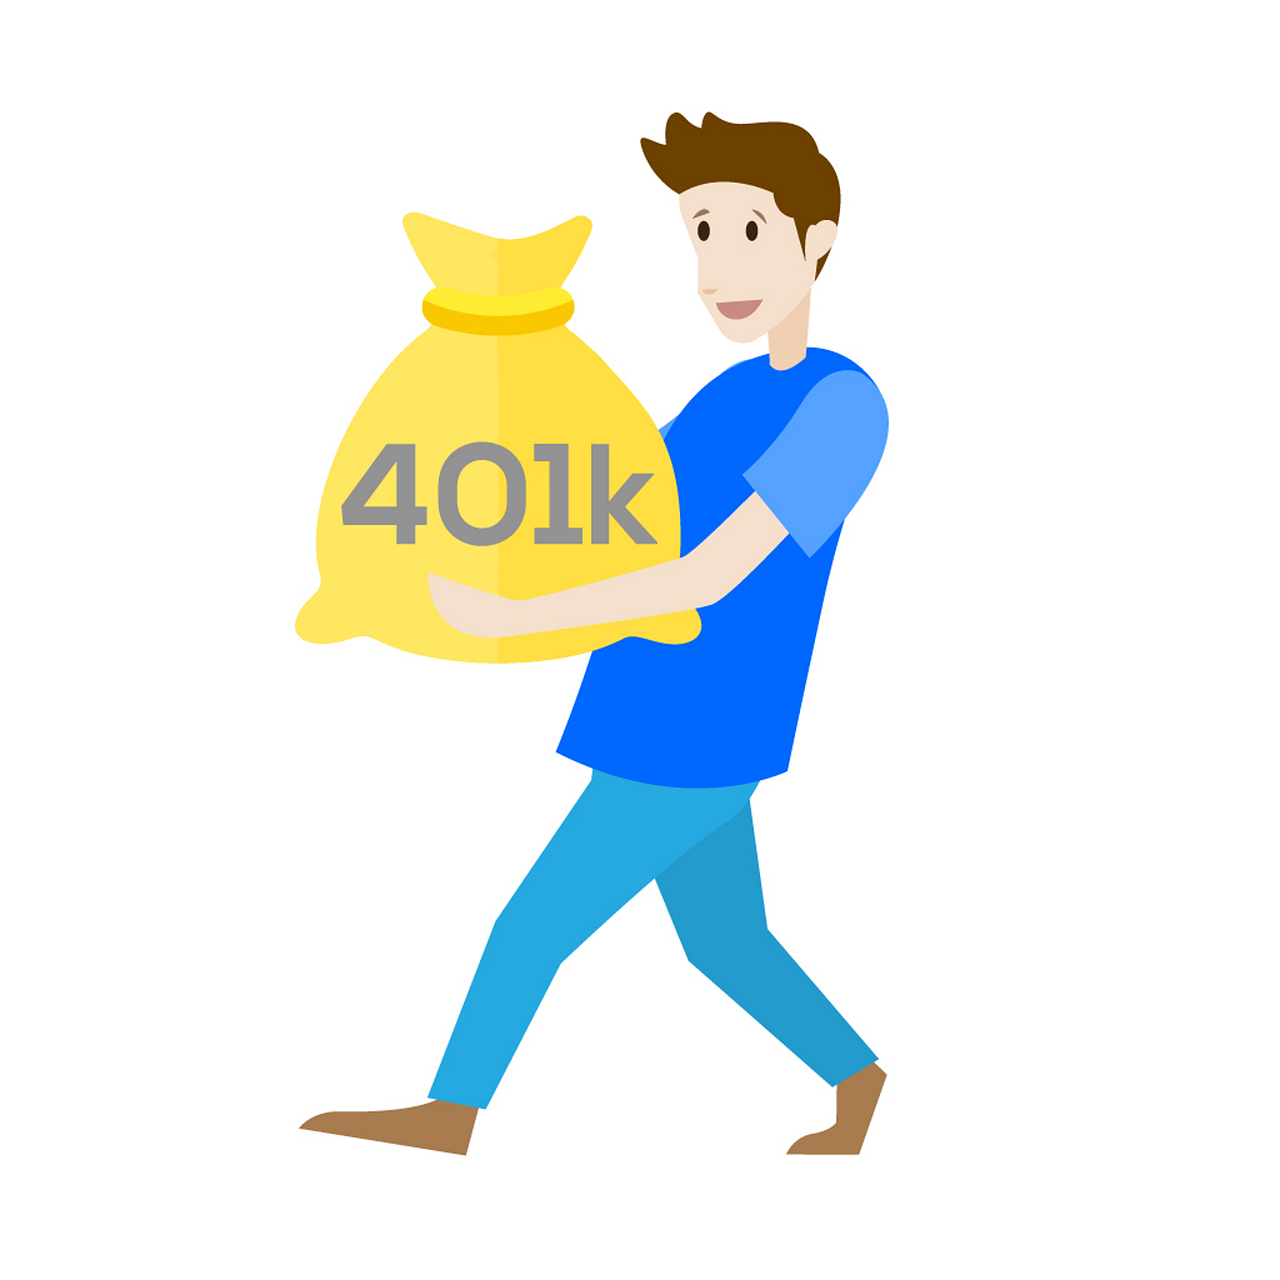 Your 401k gold mine